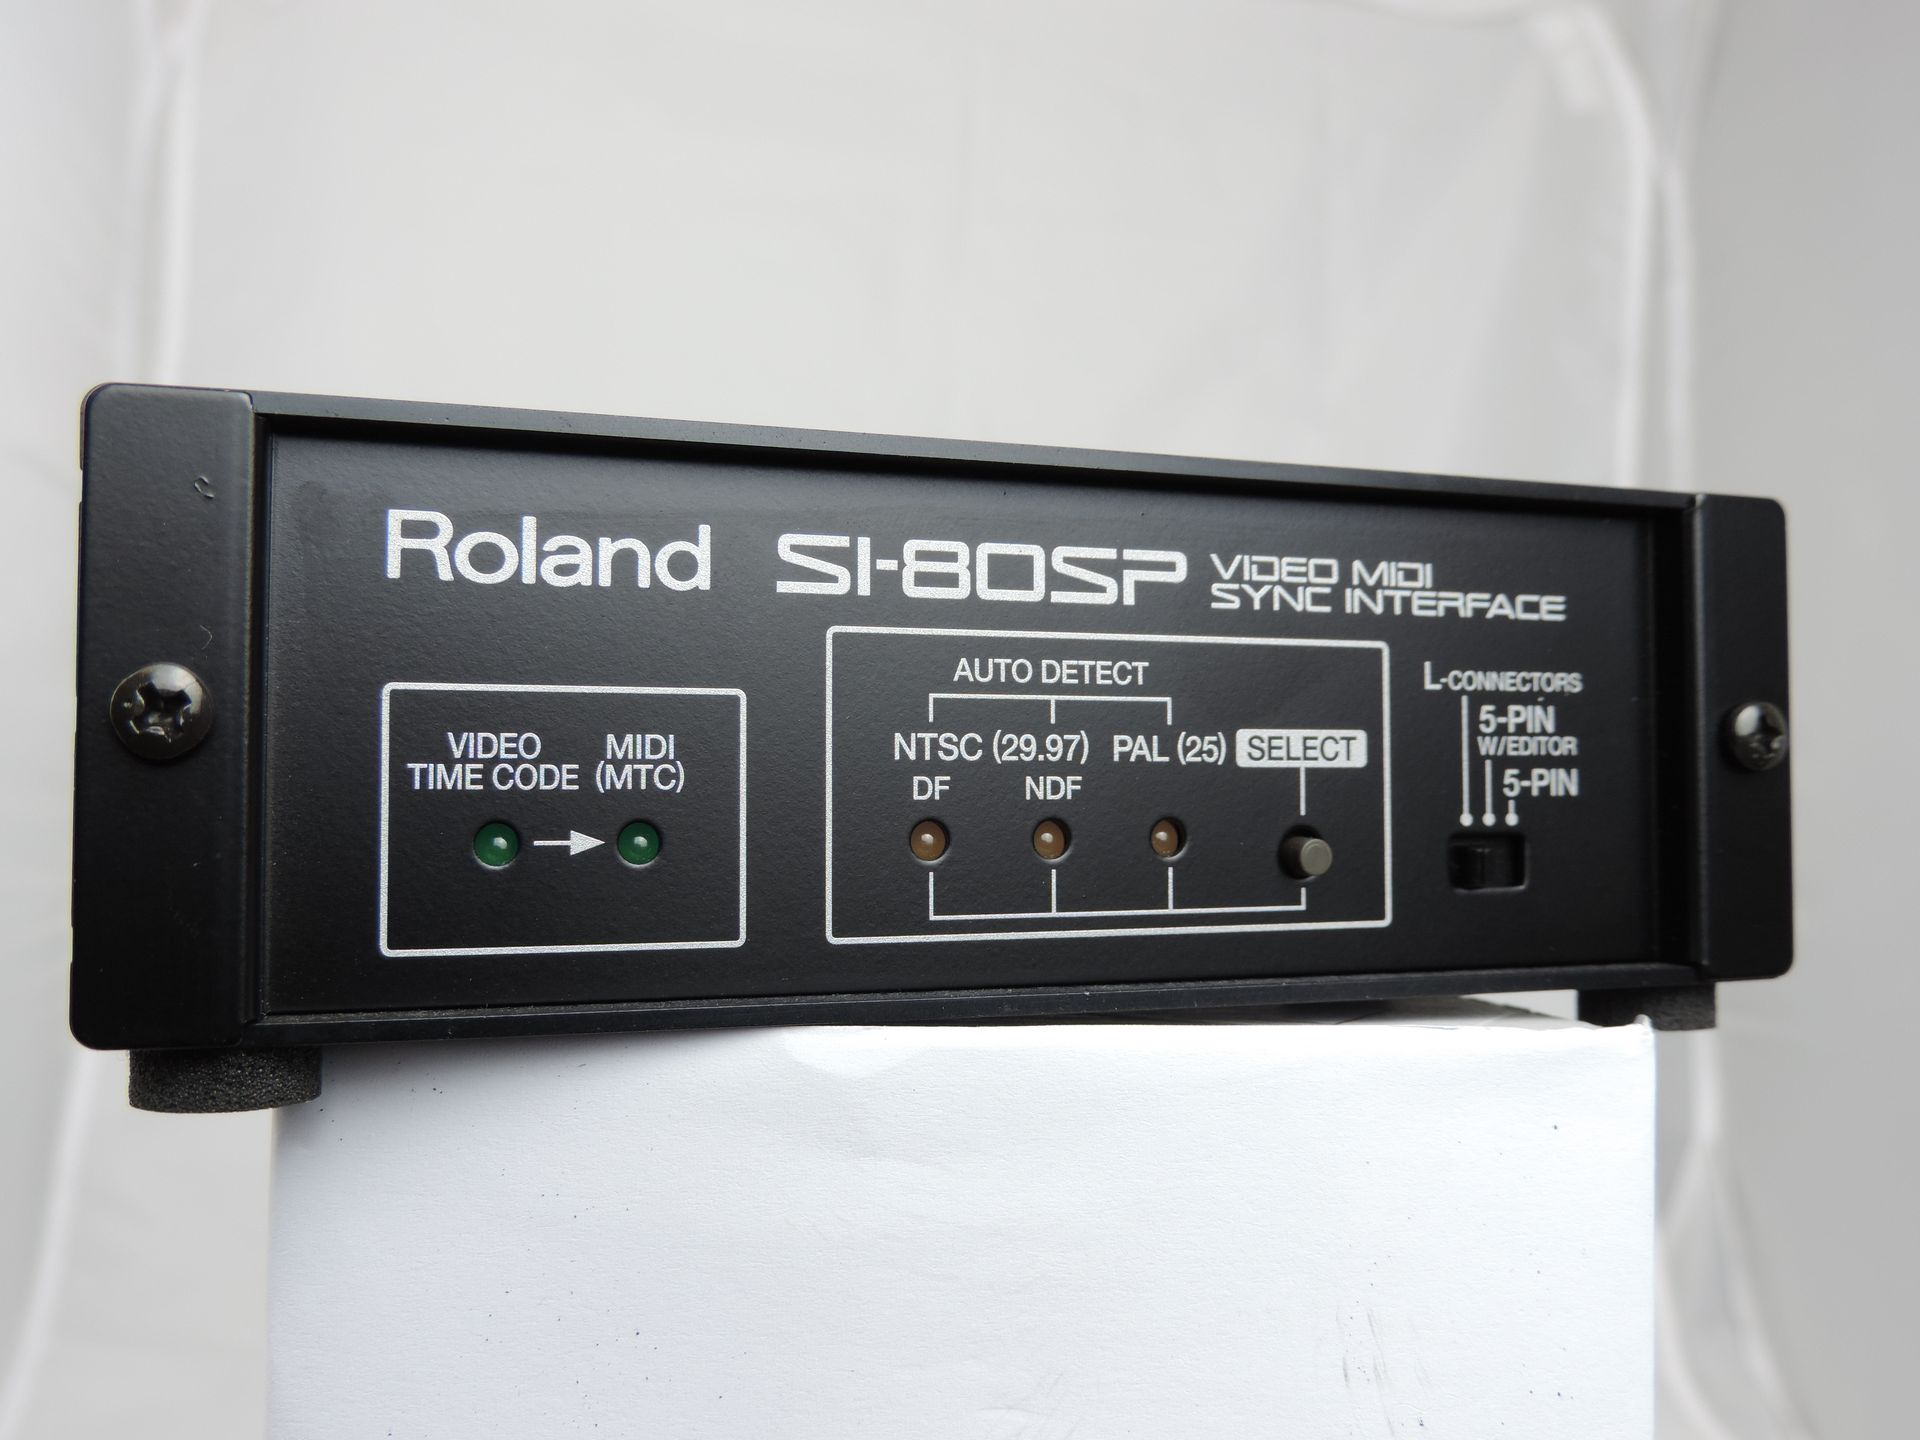 Roland SI-80SP MIDI LANC synchroniser for sale at Plasma Music